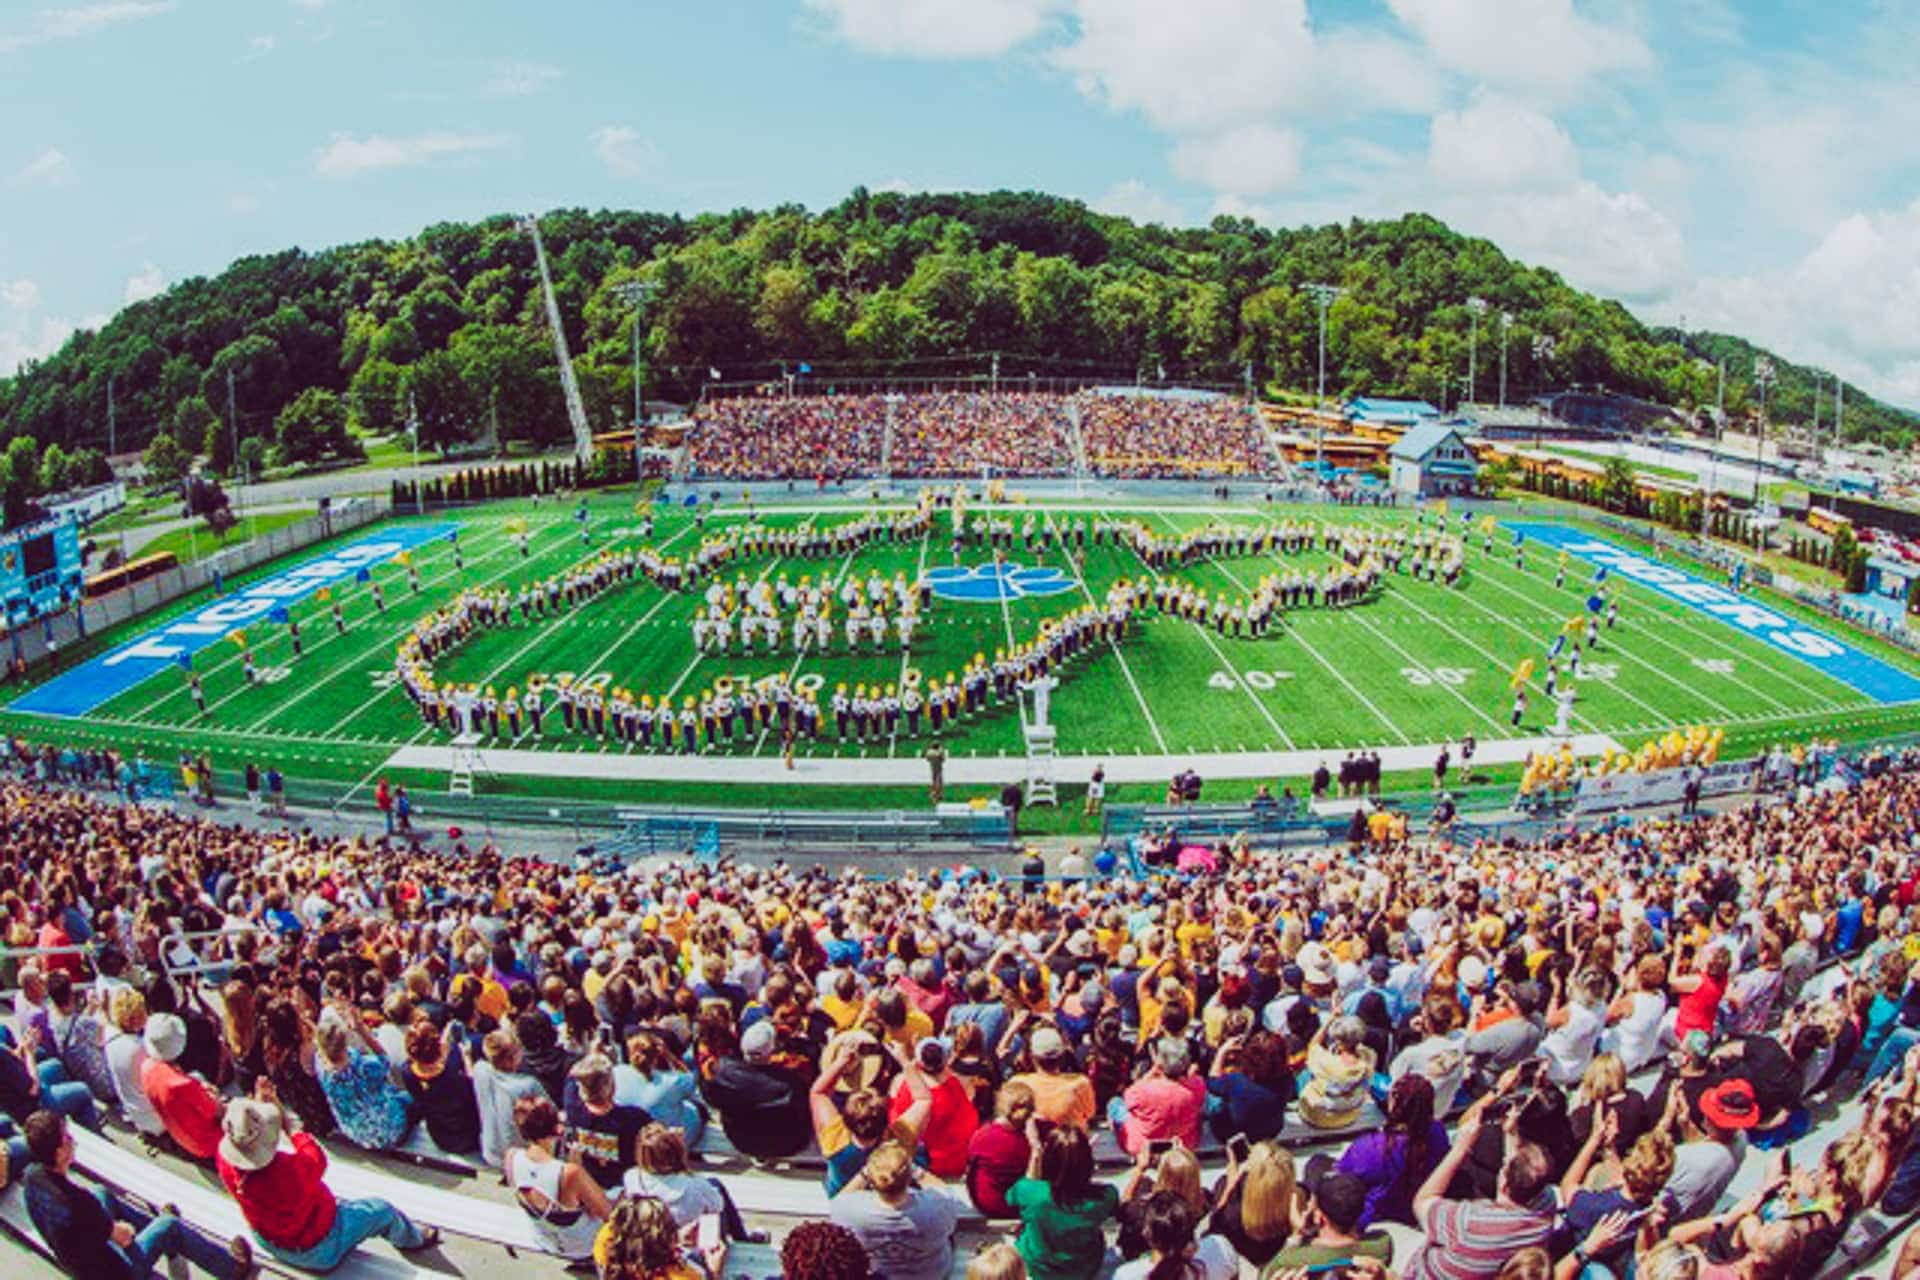 Donors contribute $125K to WVU marching band's travel fund